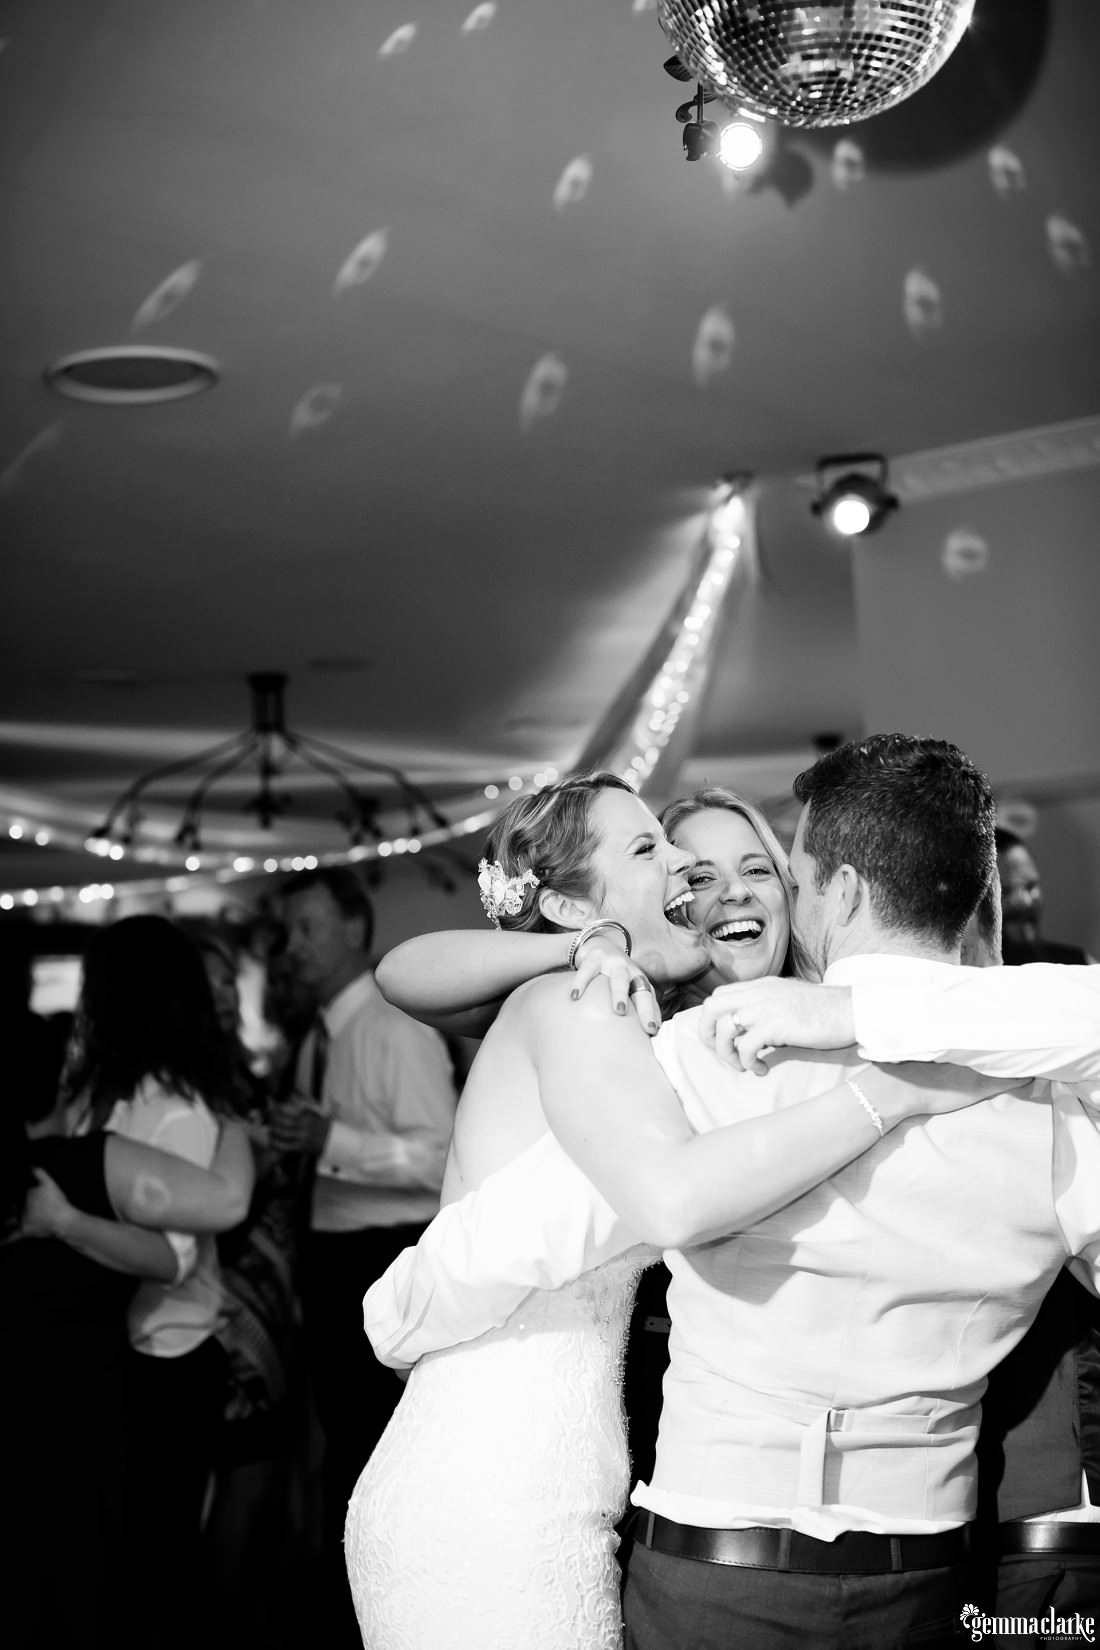 A bride and groom getting a hug from a guest on the dancefloor